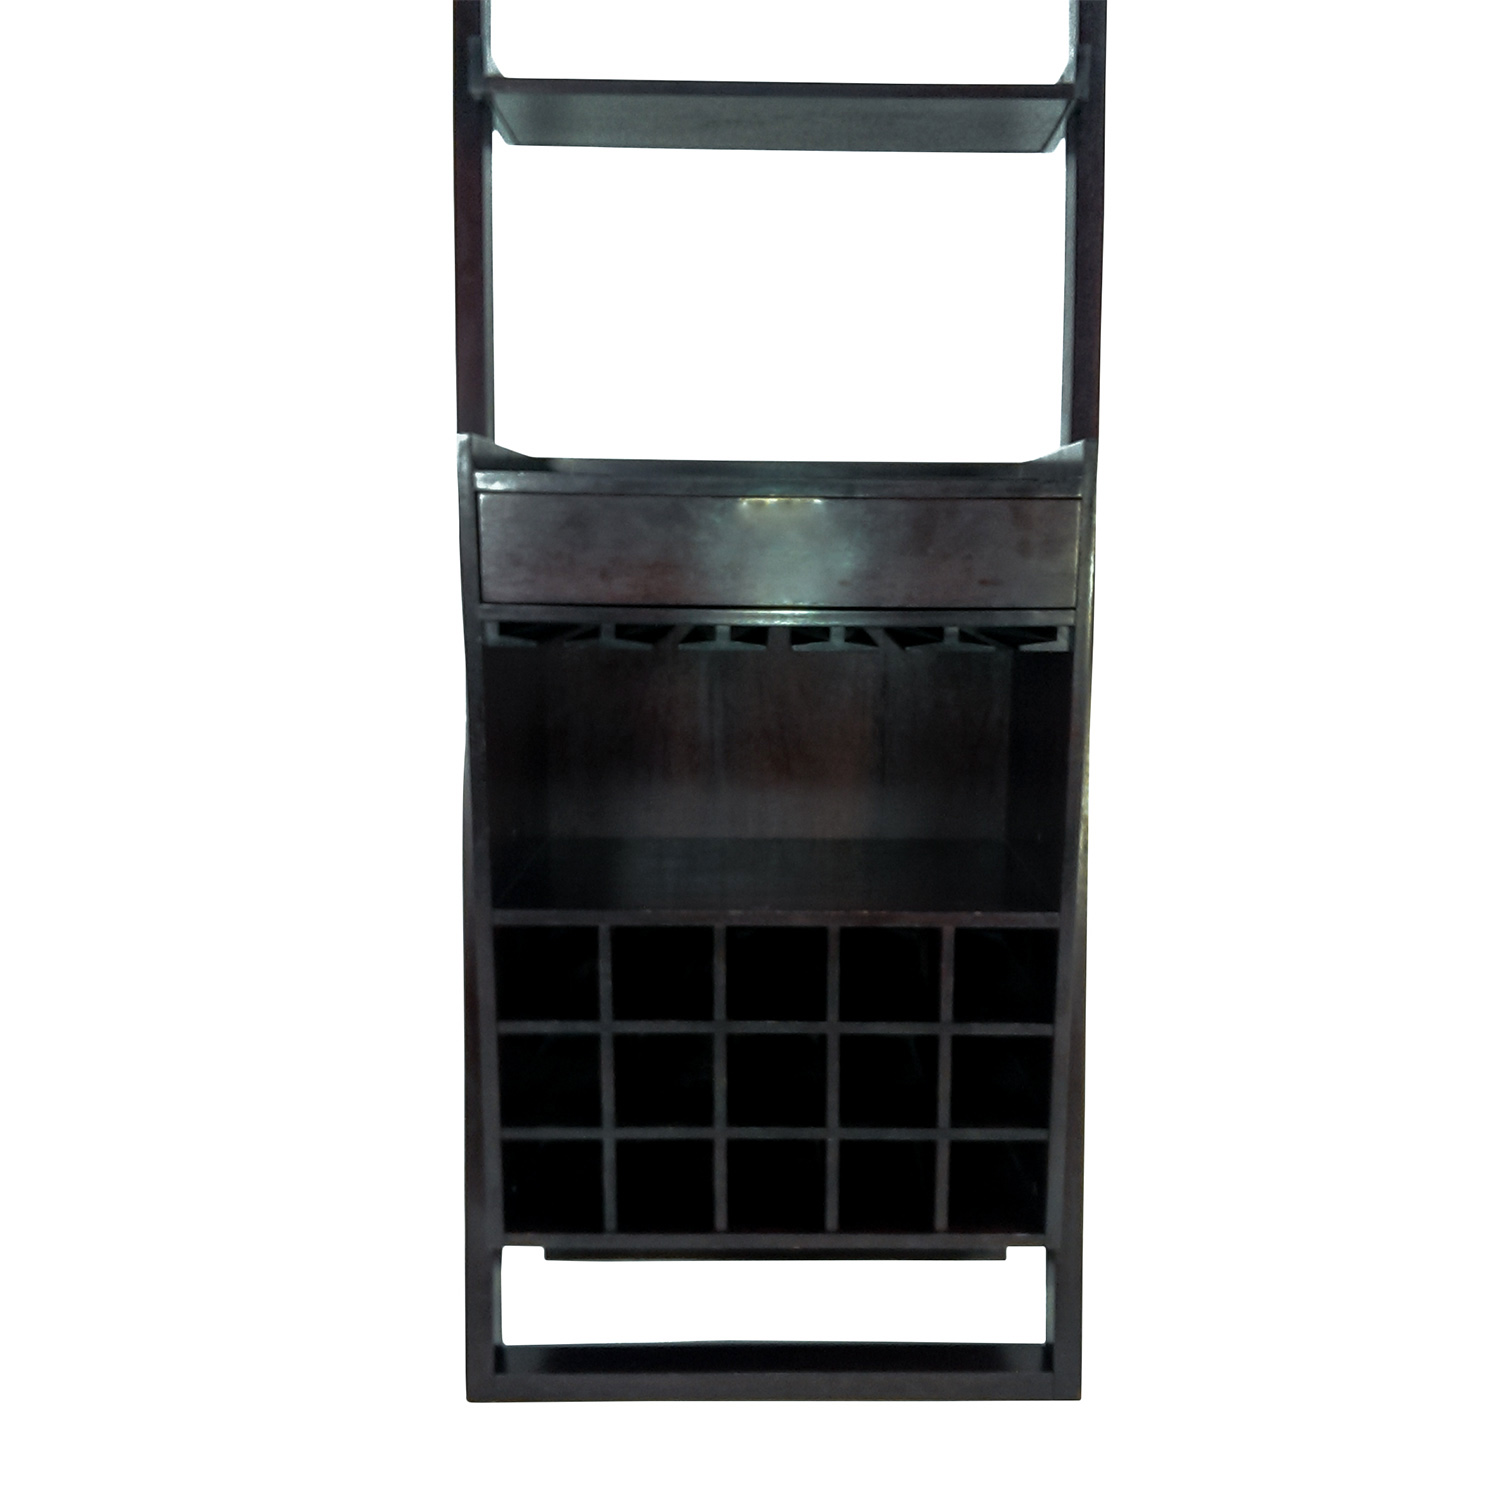 Crate and Barrel Crate and Barrel Leaning Wine Rack